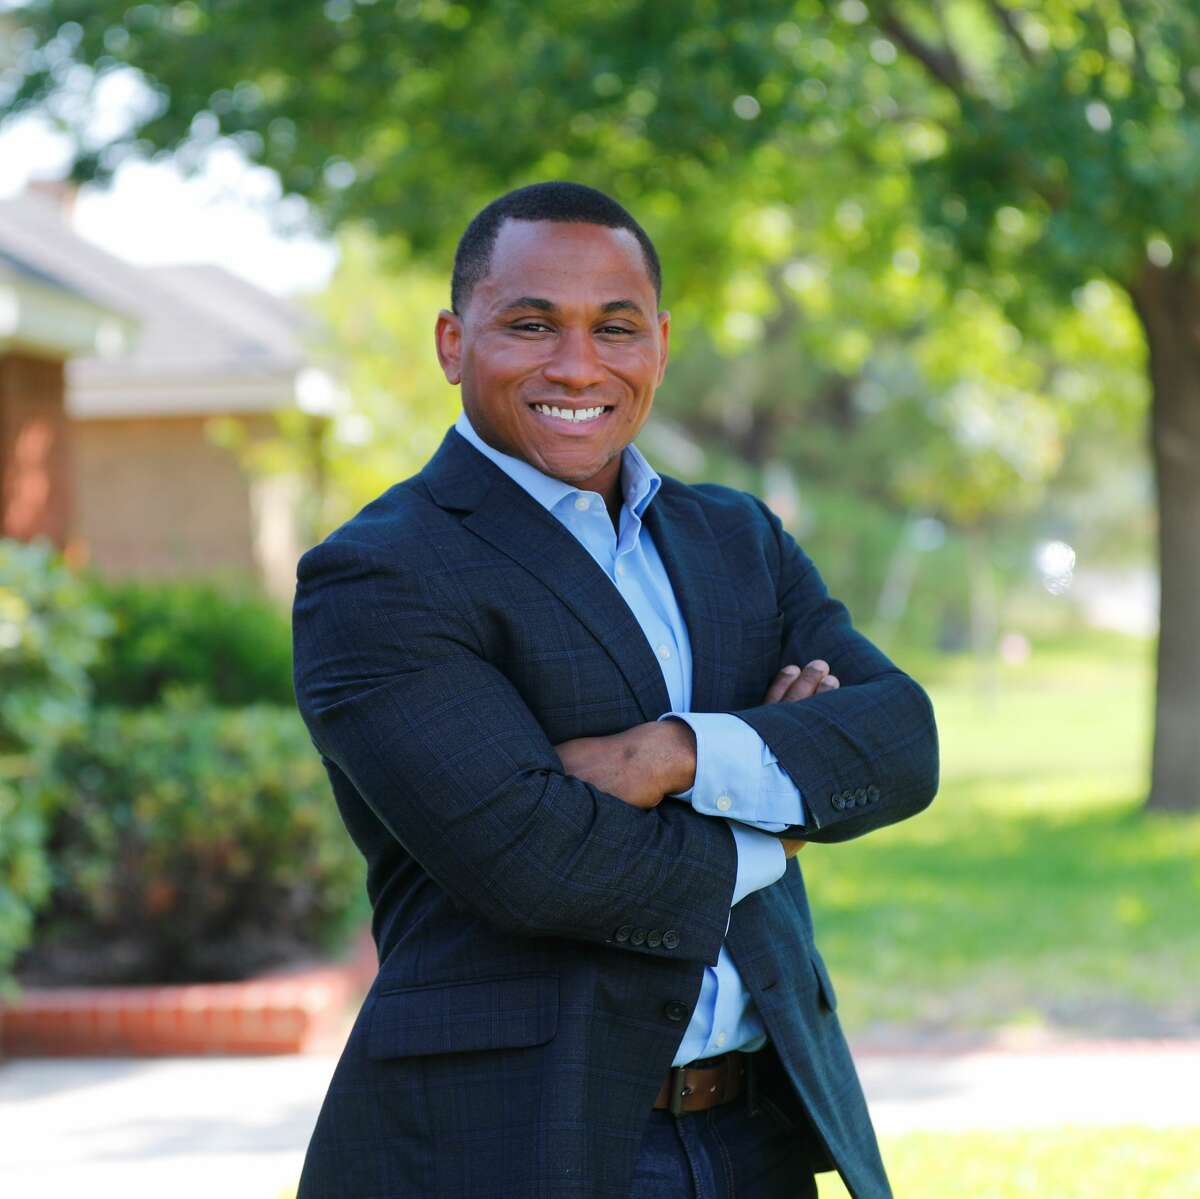 Midlander Brandon Batch has been appointed to the Texas Department of Housing and Community Affairs for a term set to expire on Jan. 31, 2021, according to a press release.